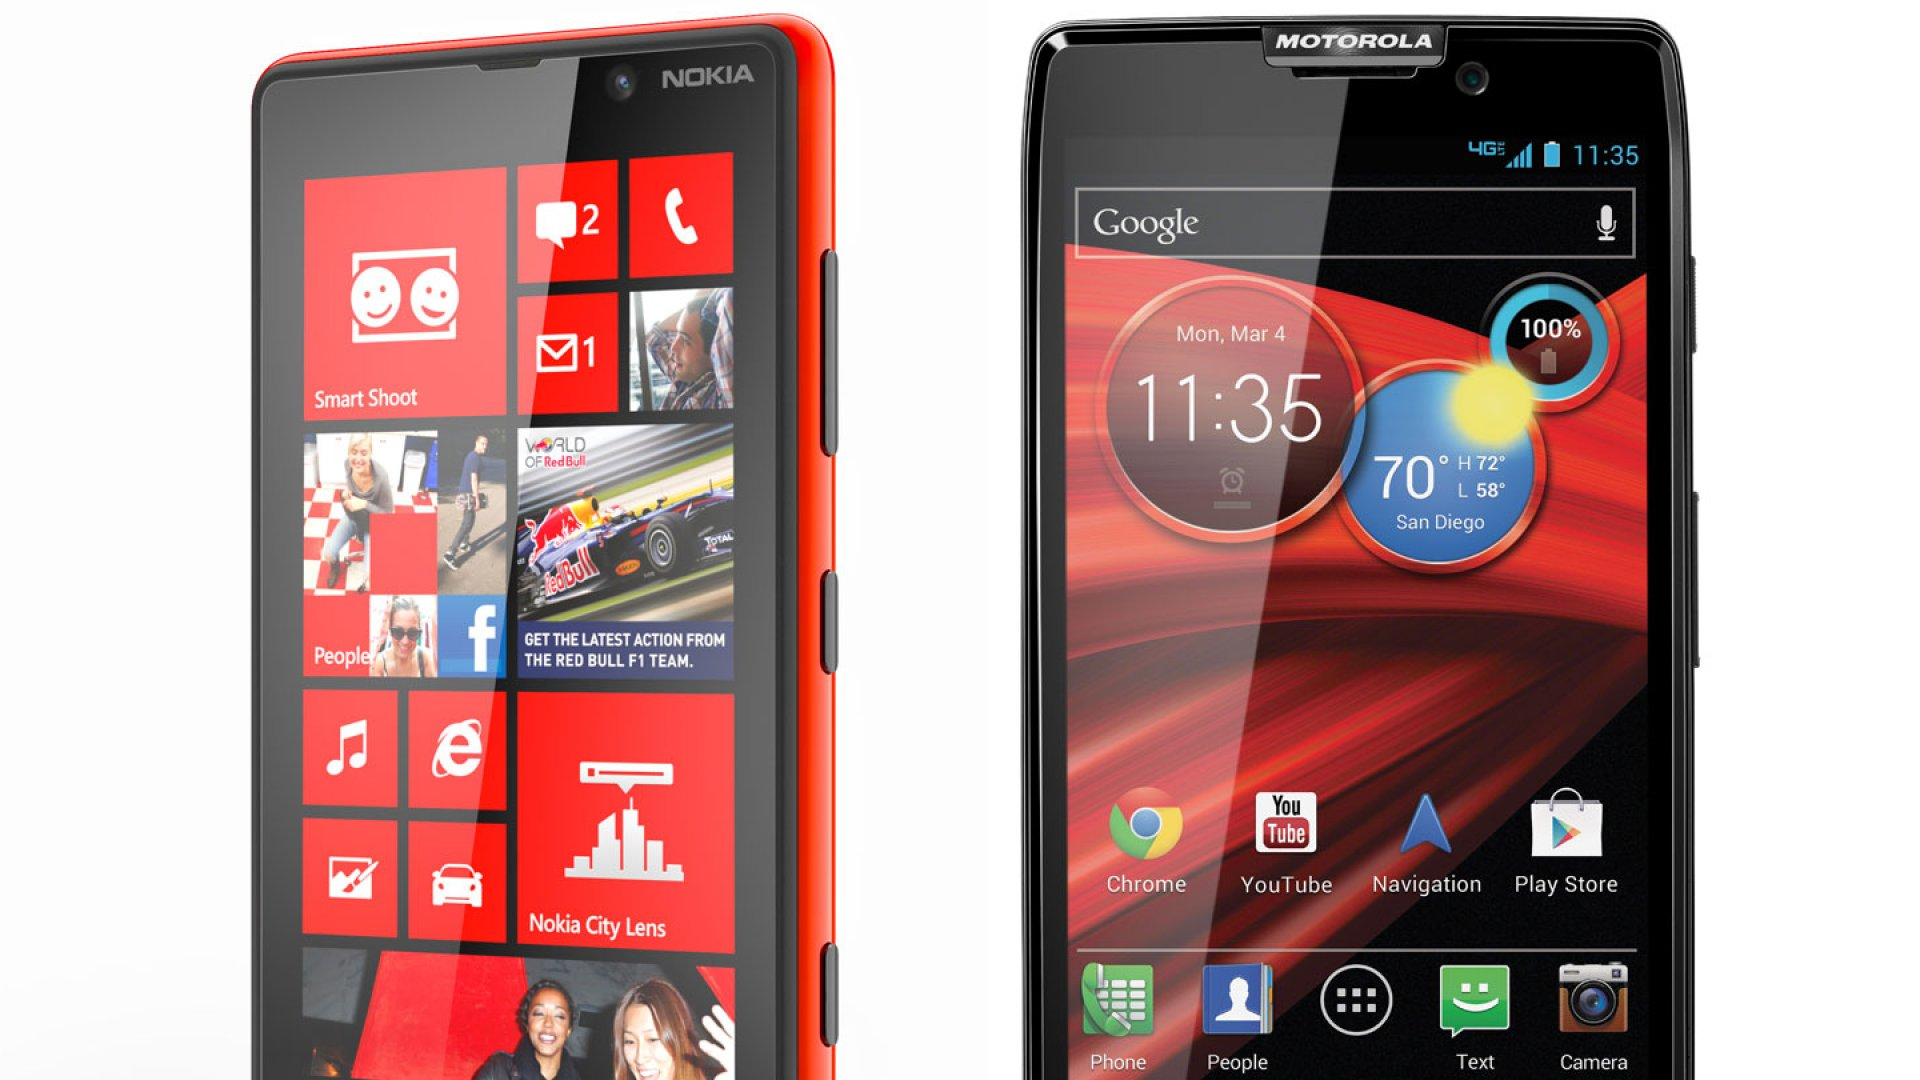 On Wednesday, Nokia and Microsoft unveiled new Windows 8 devices and Motorola and Google introduced three new 4G LTE smartphones.